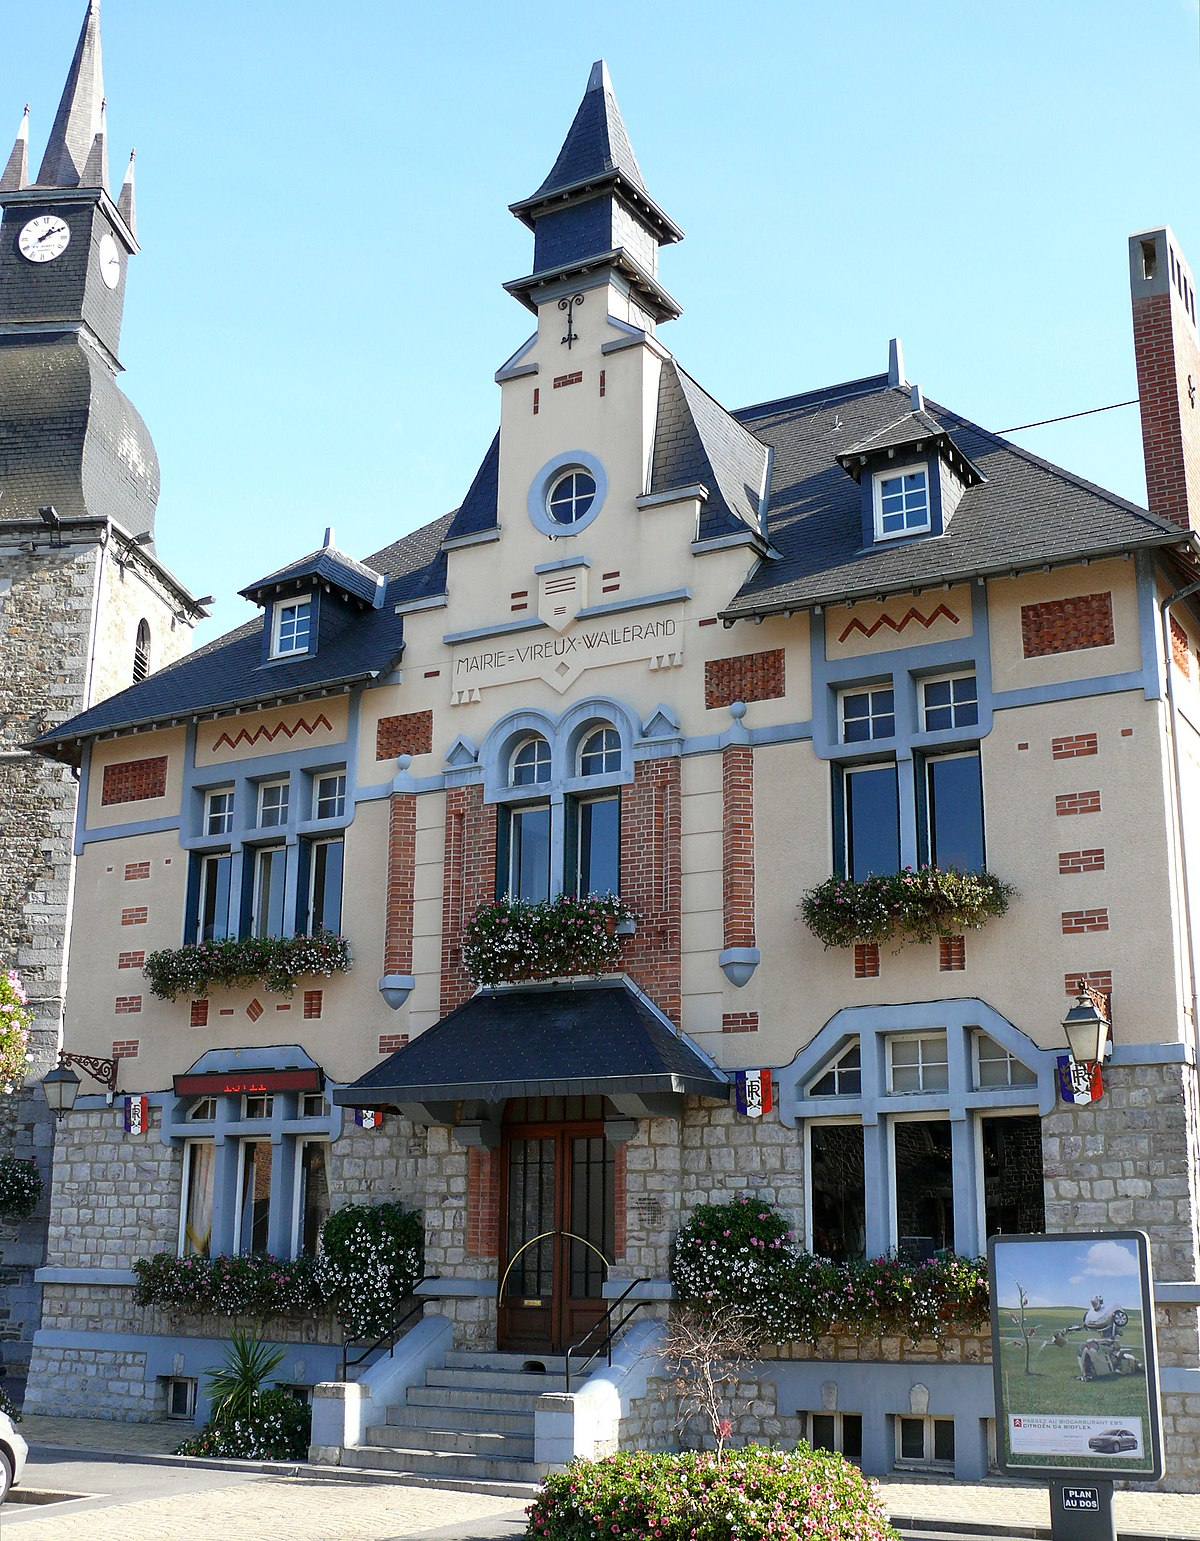 Vireux-Wallerand - Wikipedia on house floor plans, house drawing, house design, house building plans,